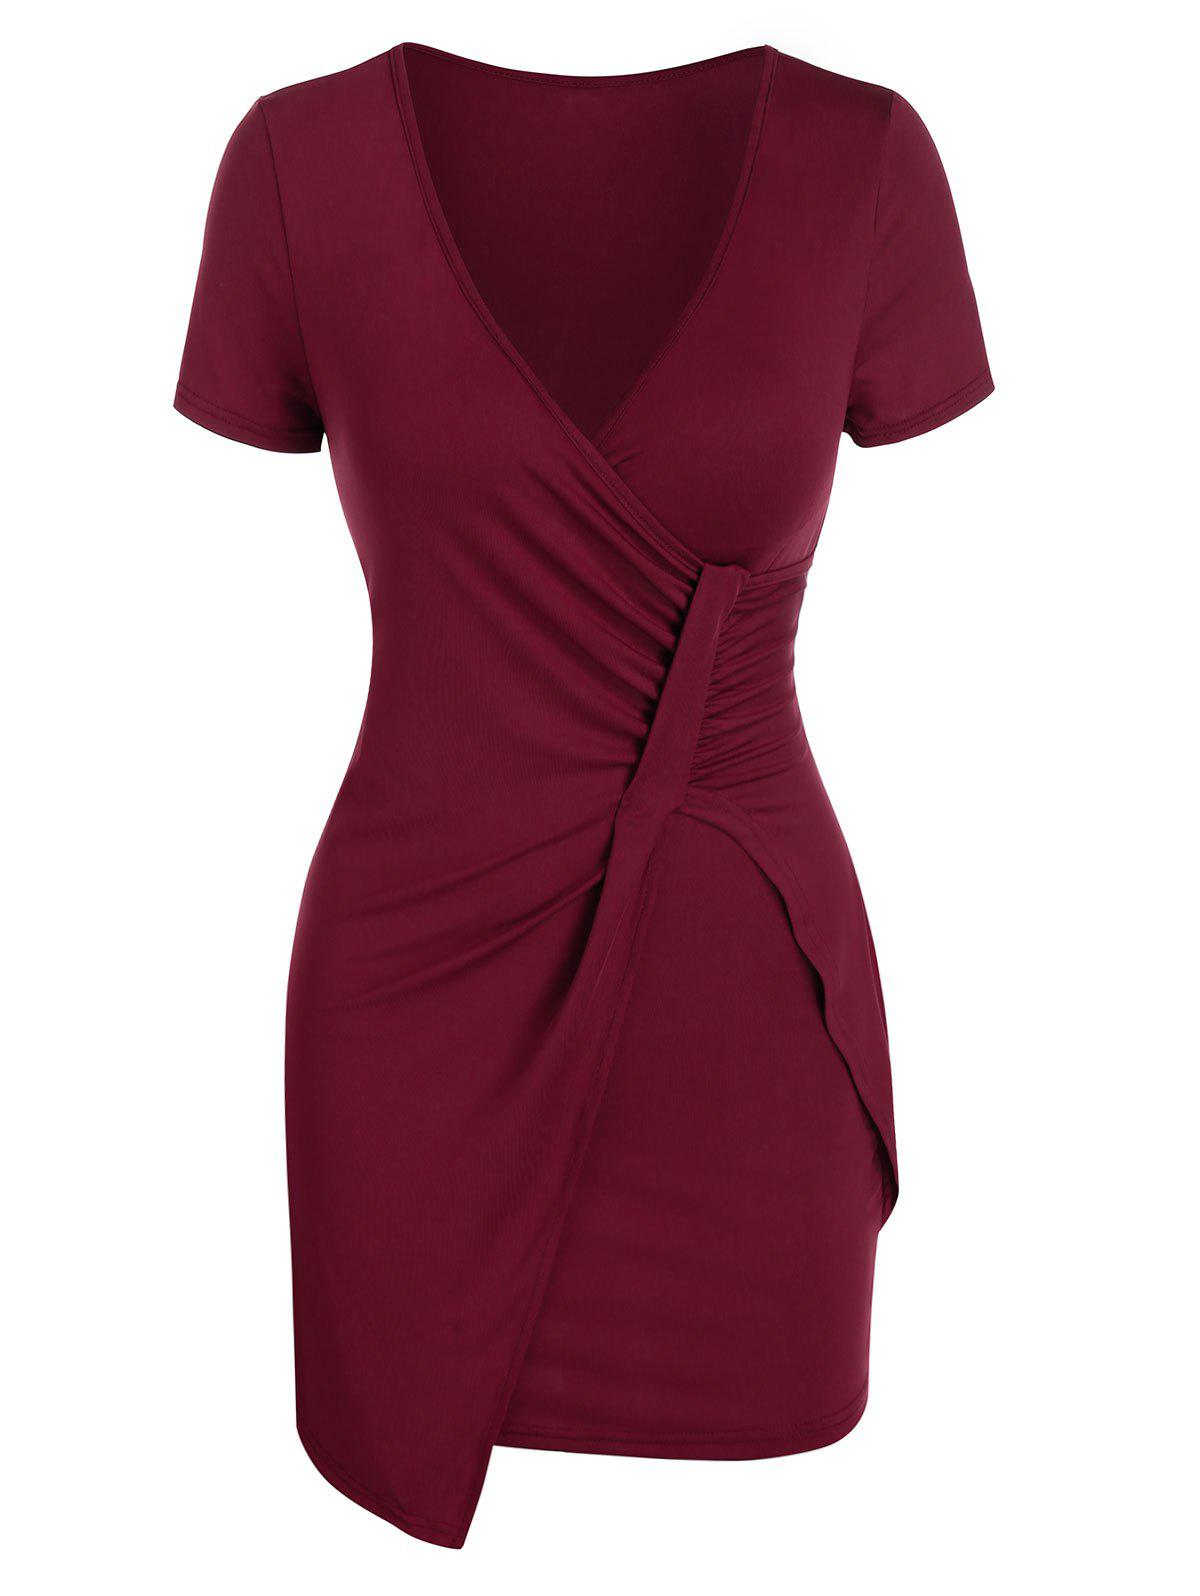 Plunge Neck Ruched Asymmetric Sheath Dress - RED WINE 2XL